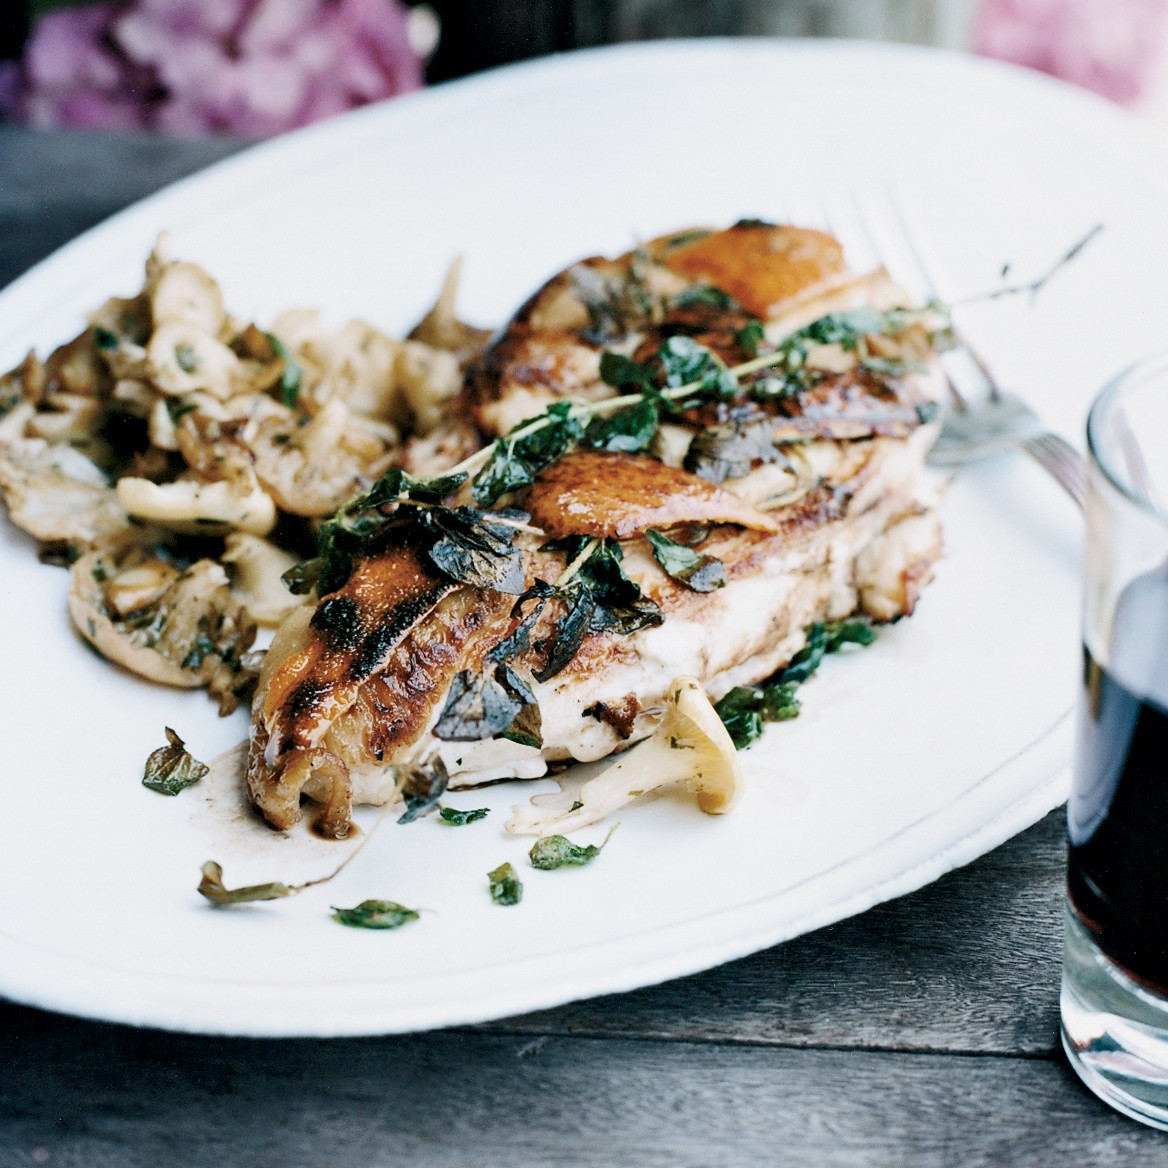 Chicken recipe sautéed with mushrooms and soy